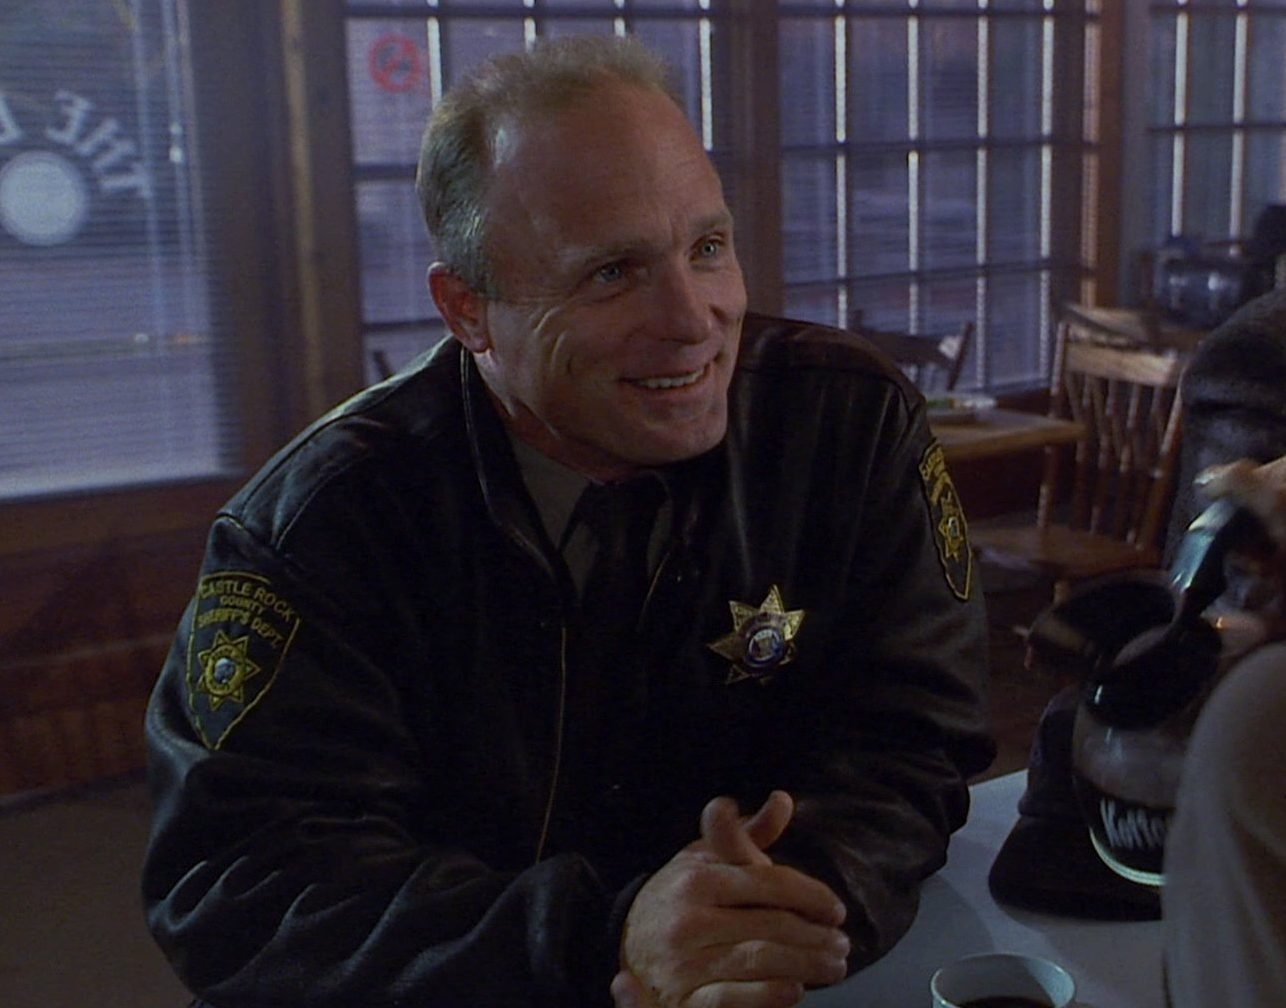 DkNg7 bU0AE6zZP e1607084917631 20 Things You Never Knew About Ed Harris